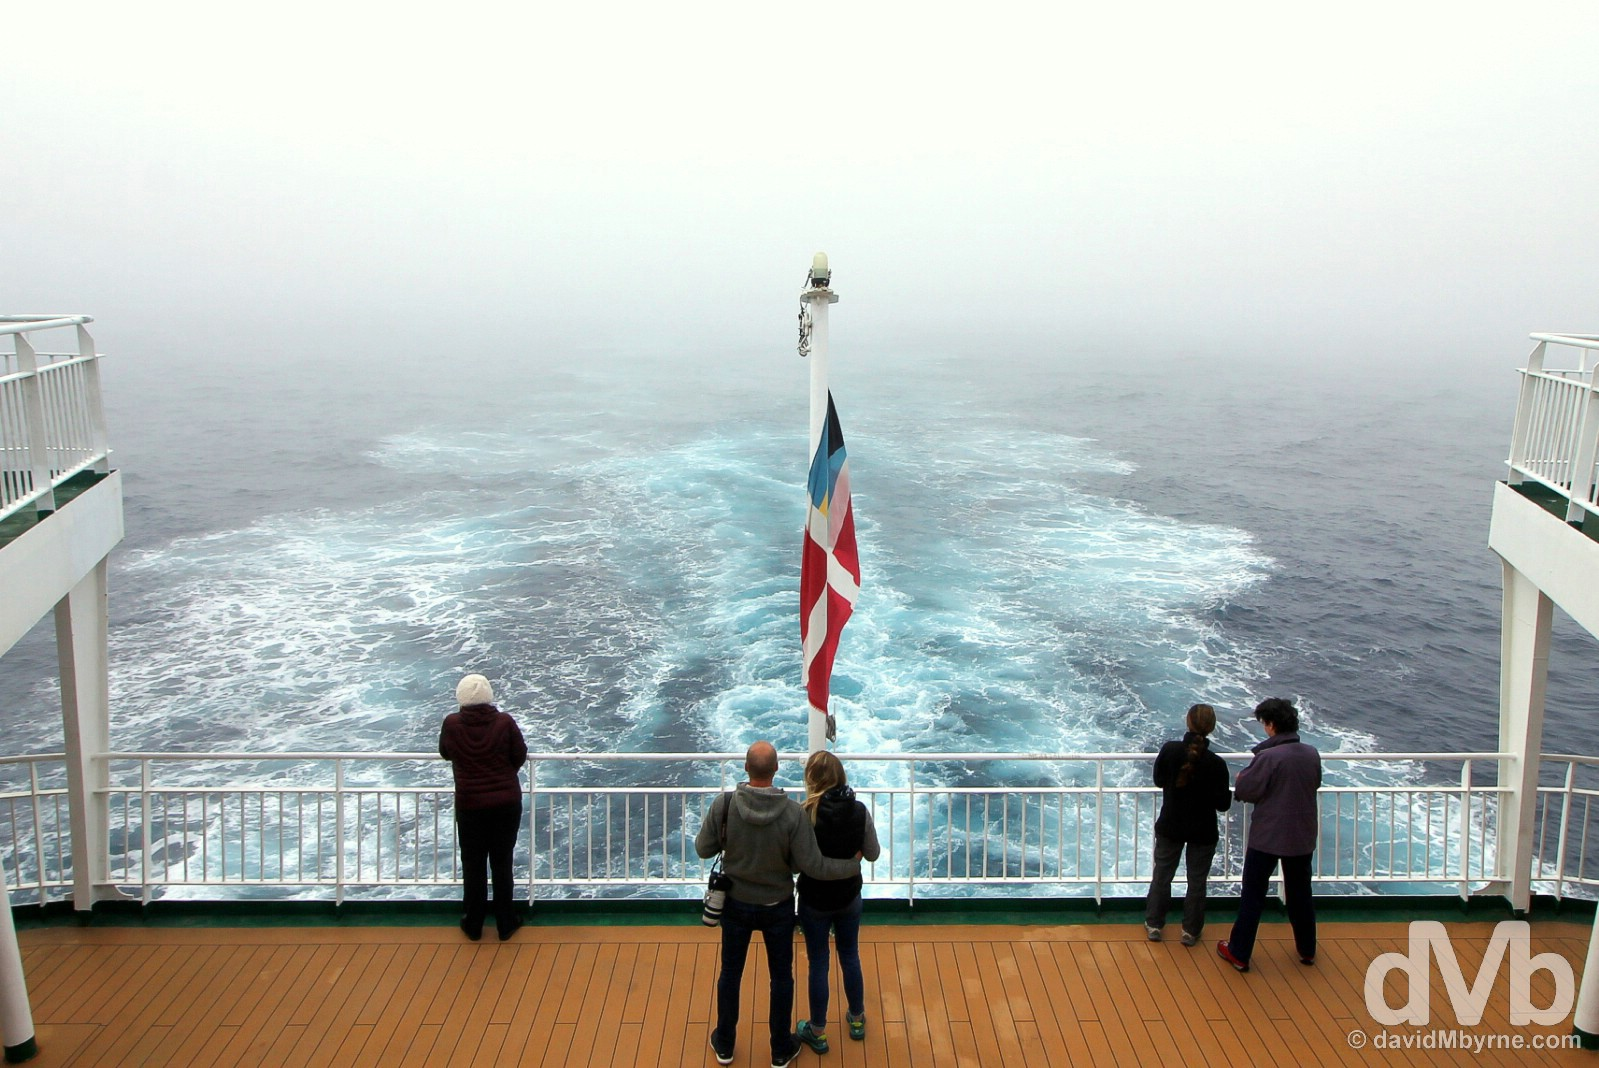 Plain sailing. Southbound across the notorious Drake Passage en route to the South Shetland Islands aboard the M/V Ocean Endeavour. November 27, 2015.